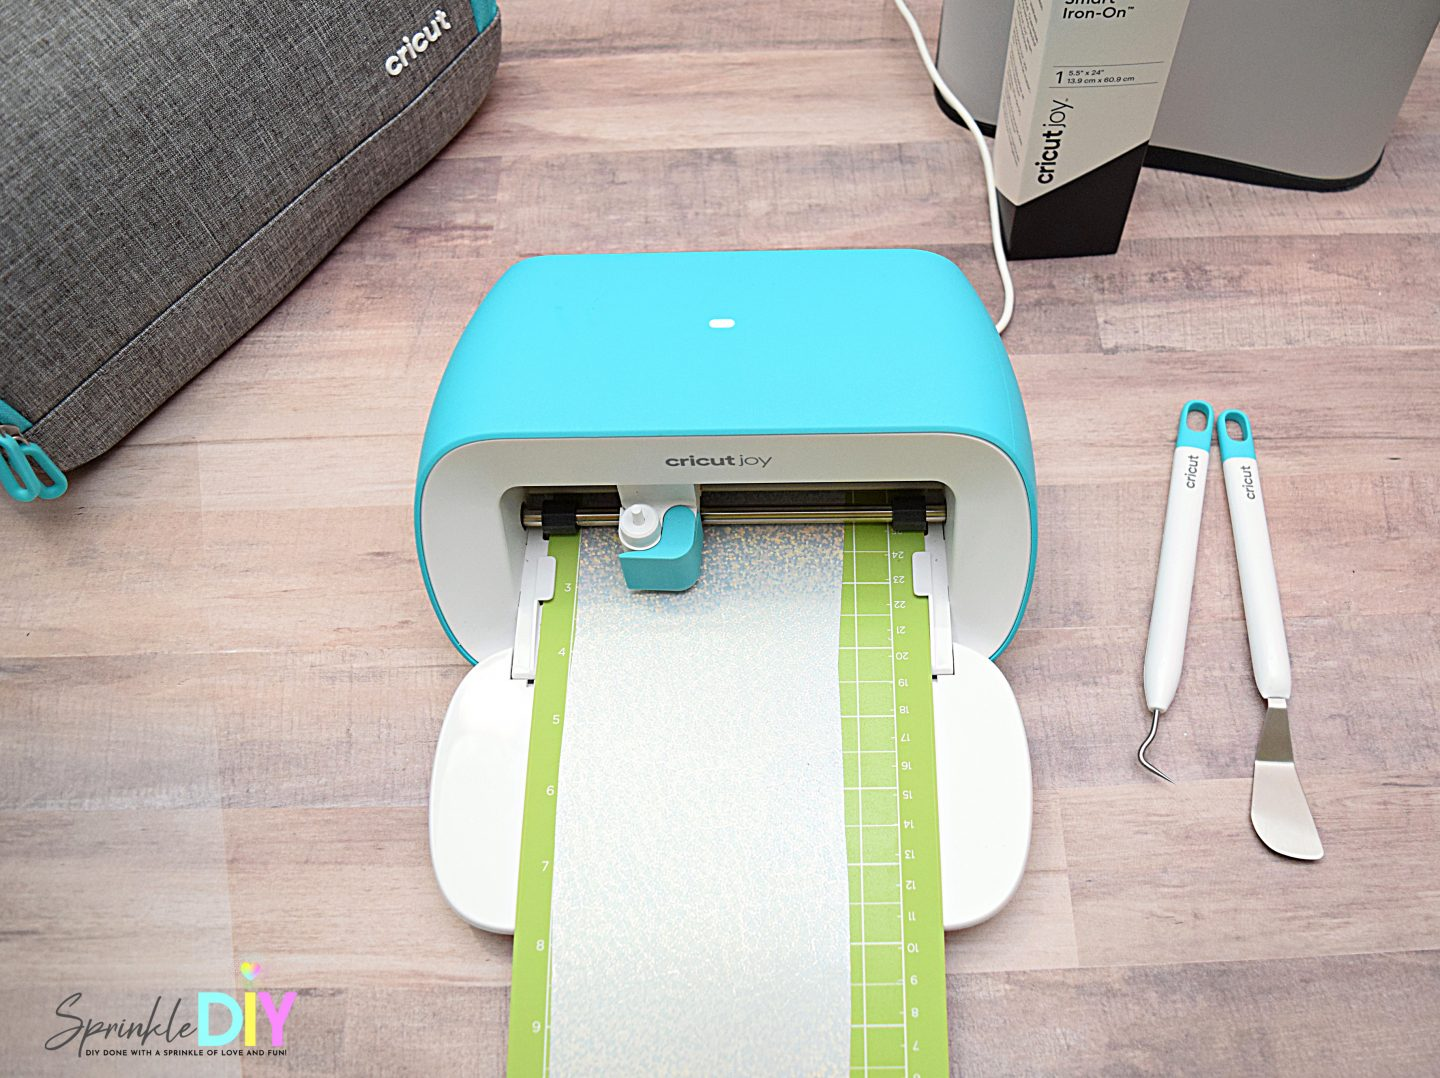 Cricut Joy Smart Iron-On